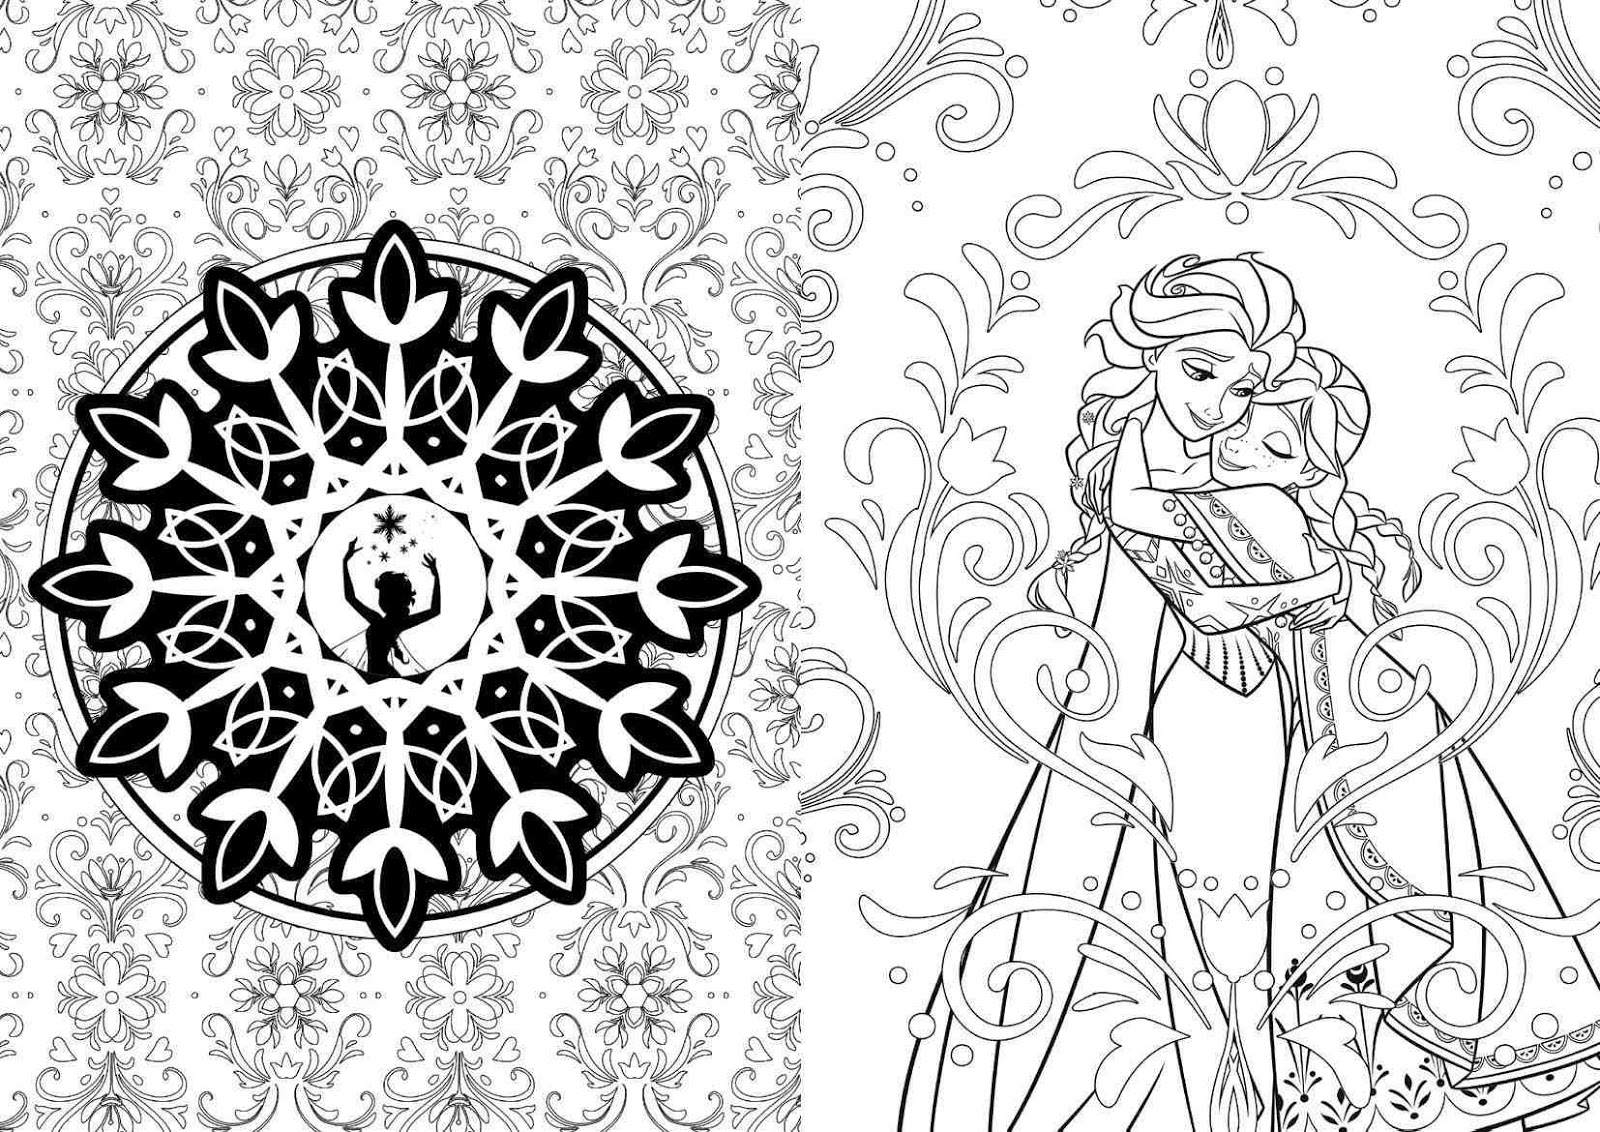 Coloring book disney princess - Wednesday December 9 2015